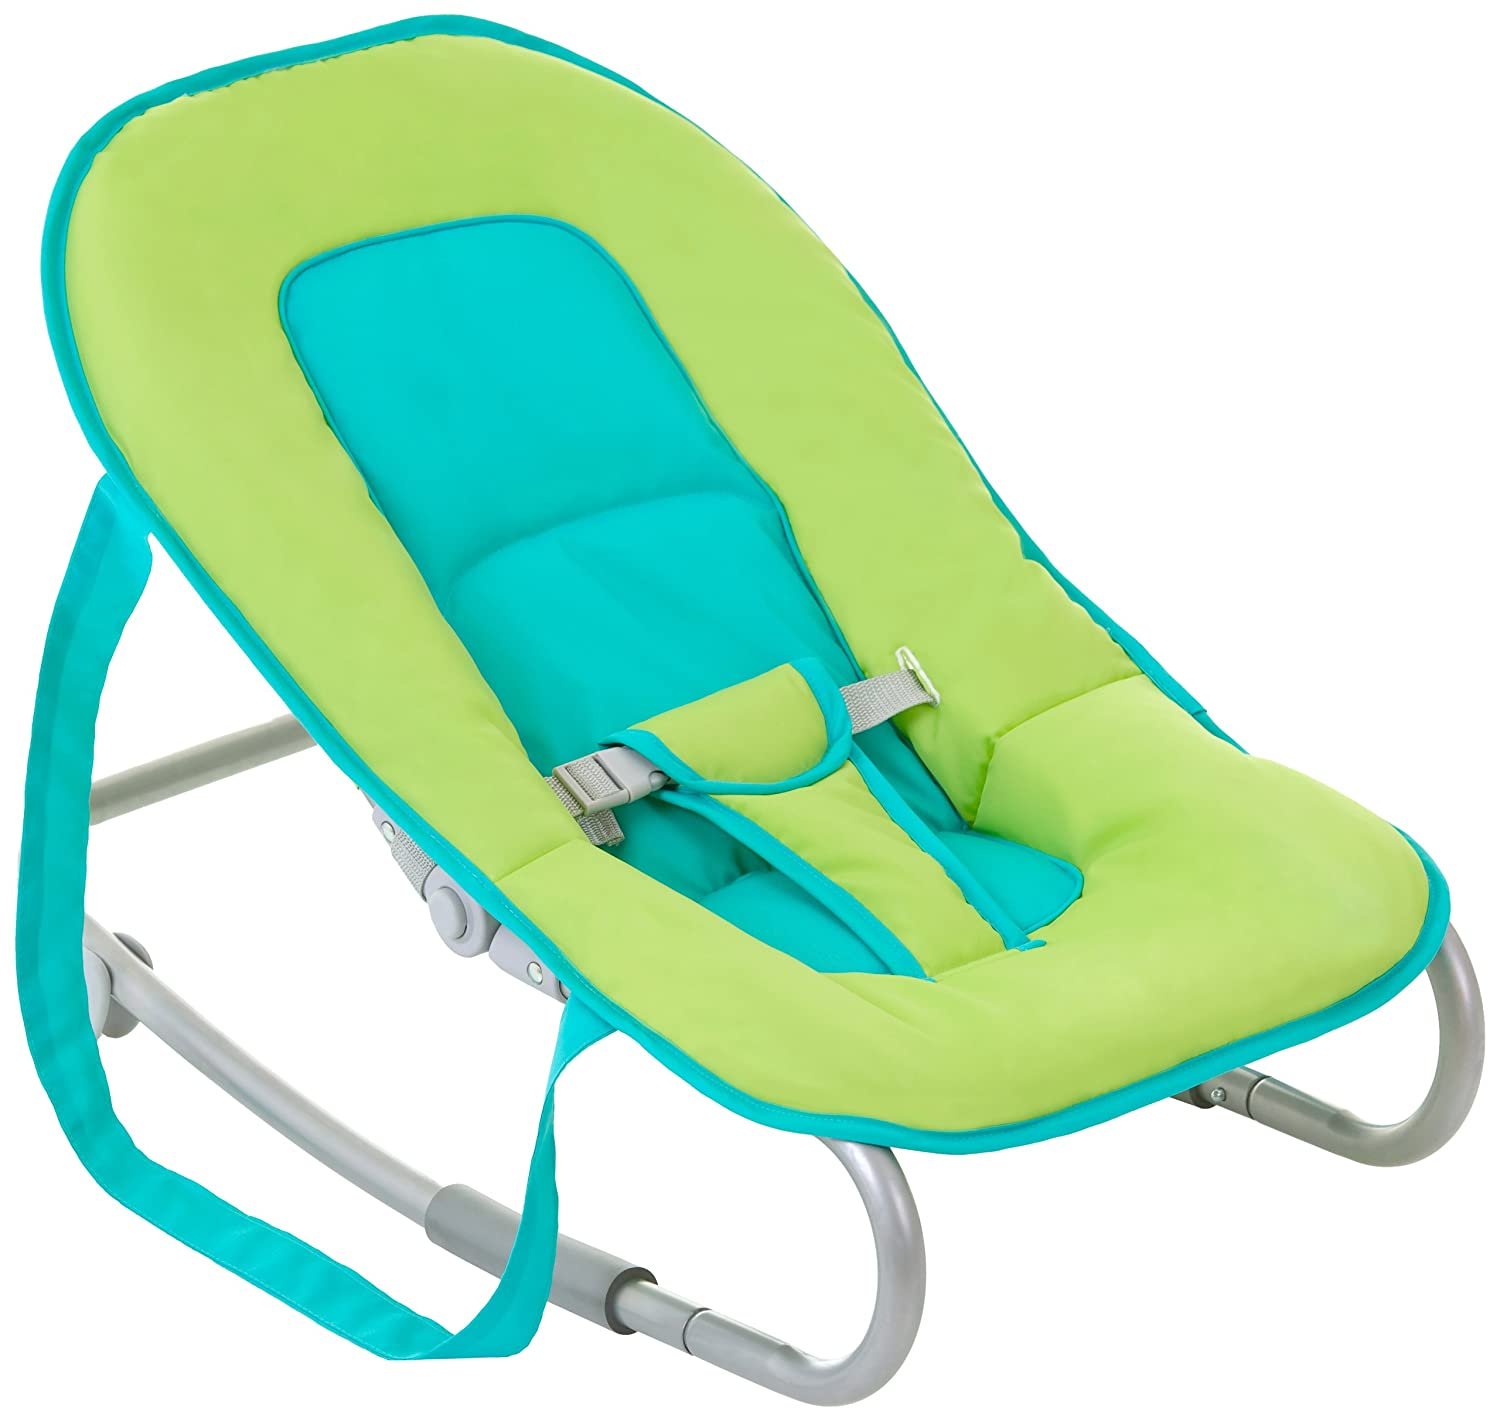 Hauck Lounger Petrol/Lime Wippe, grün,